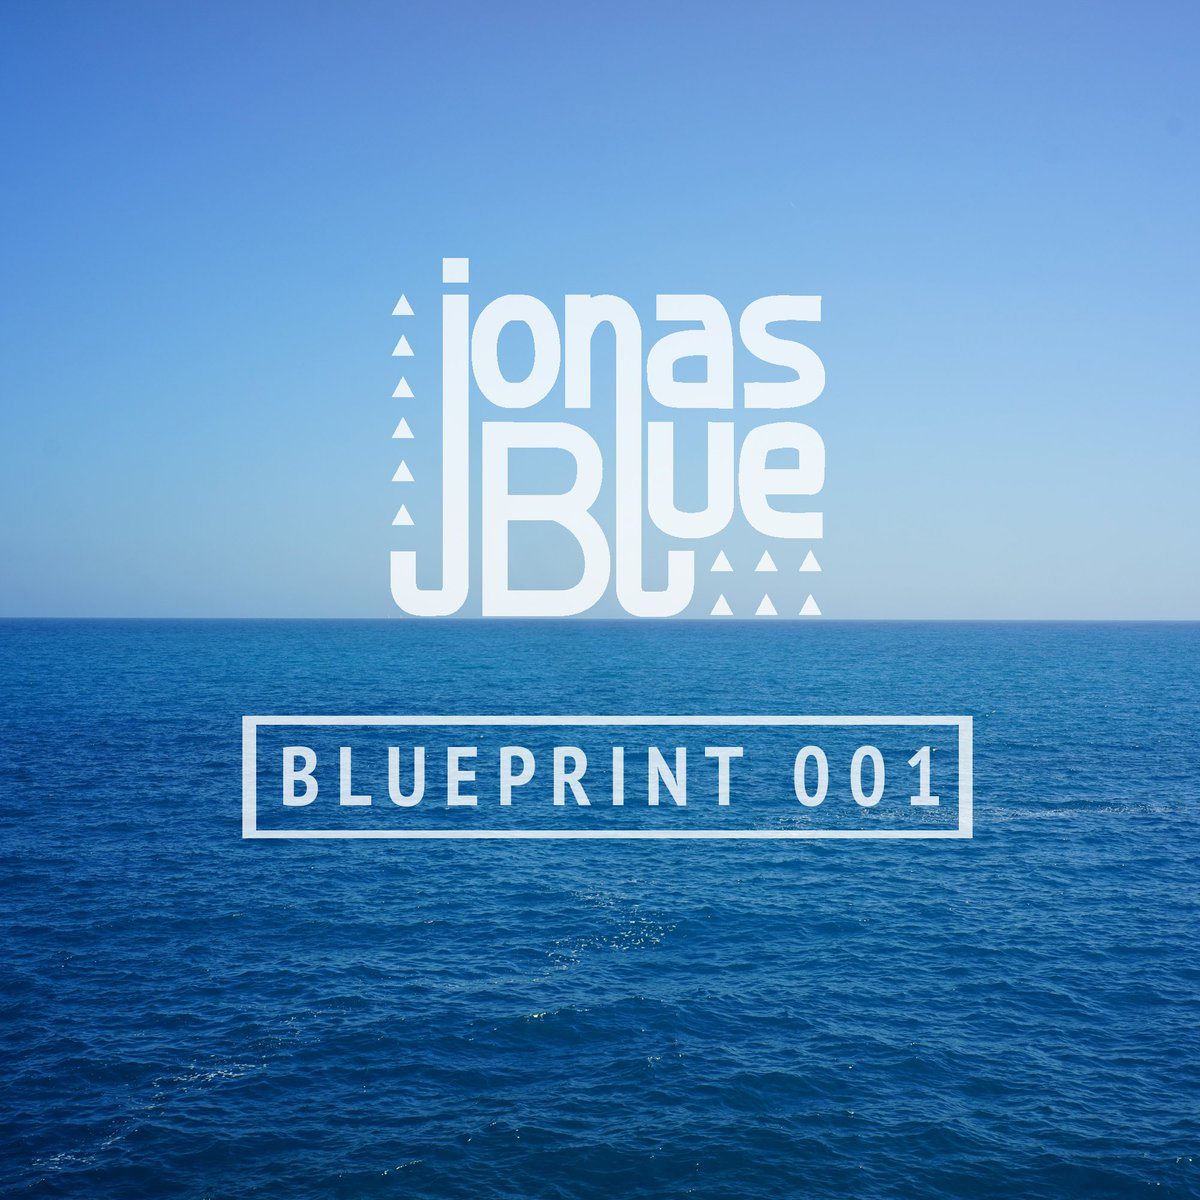 Jonas blue on twitter got the festive season blues check out my jonas blue on twitter got the festive season blues check out my new bi monthly mix series the blueprint httpsthspmqbhcn5 httpsttz3rxxkgbr malvernweather Choice Image